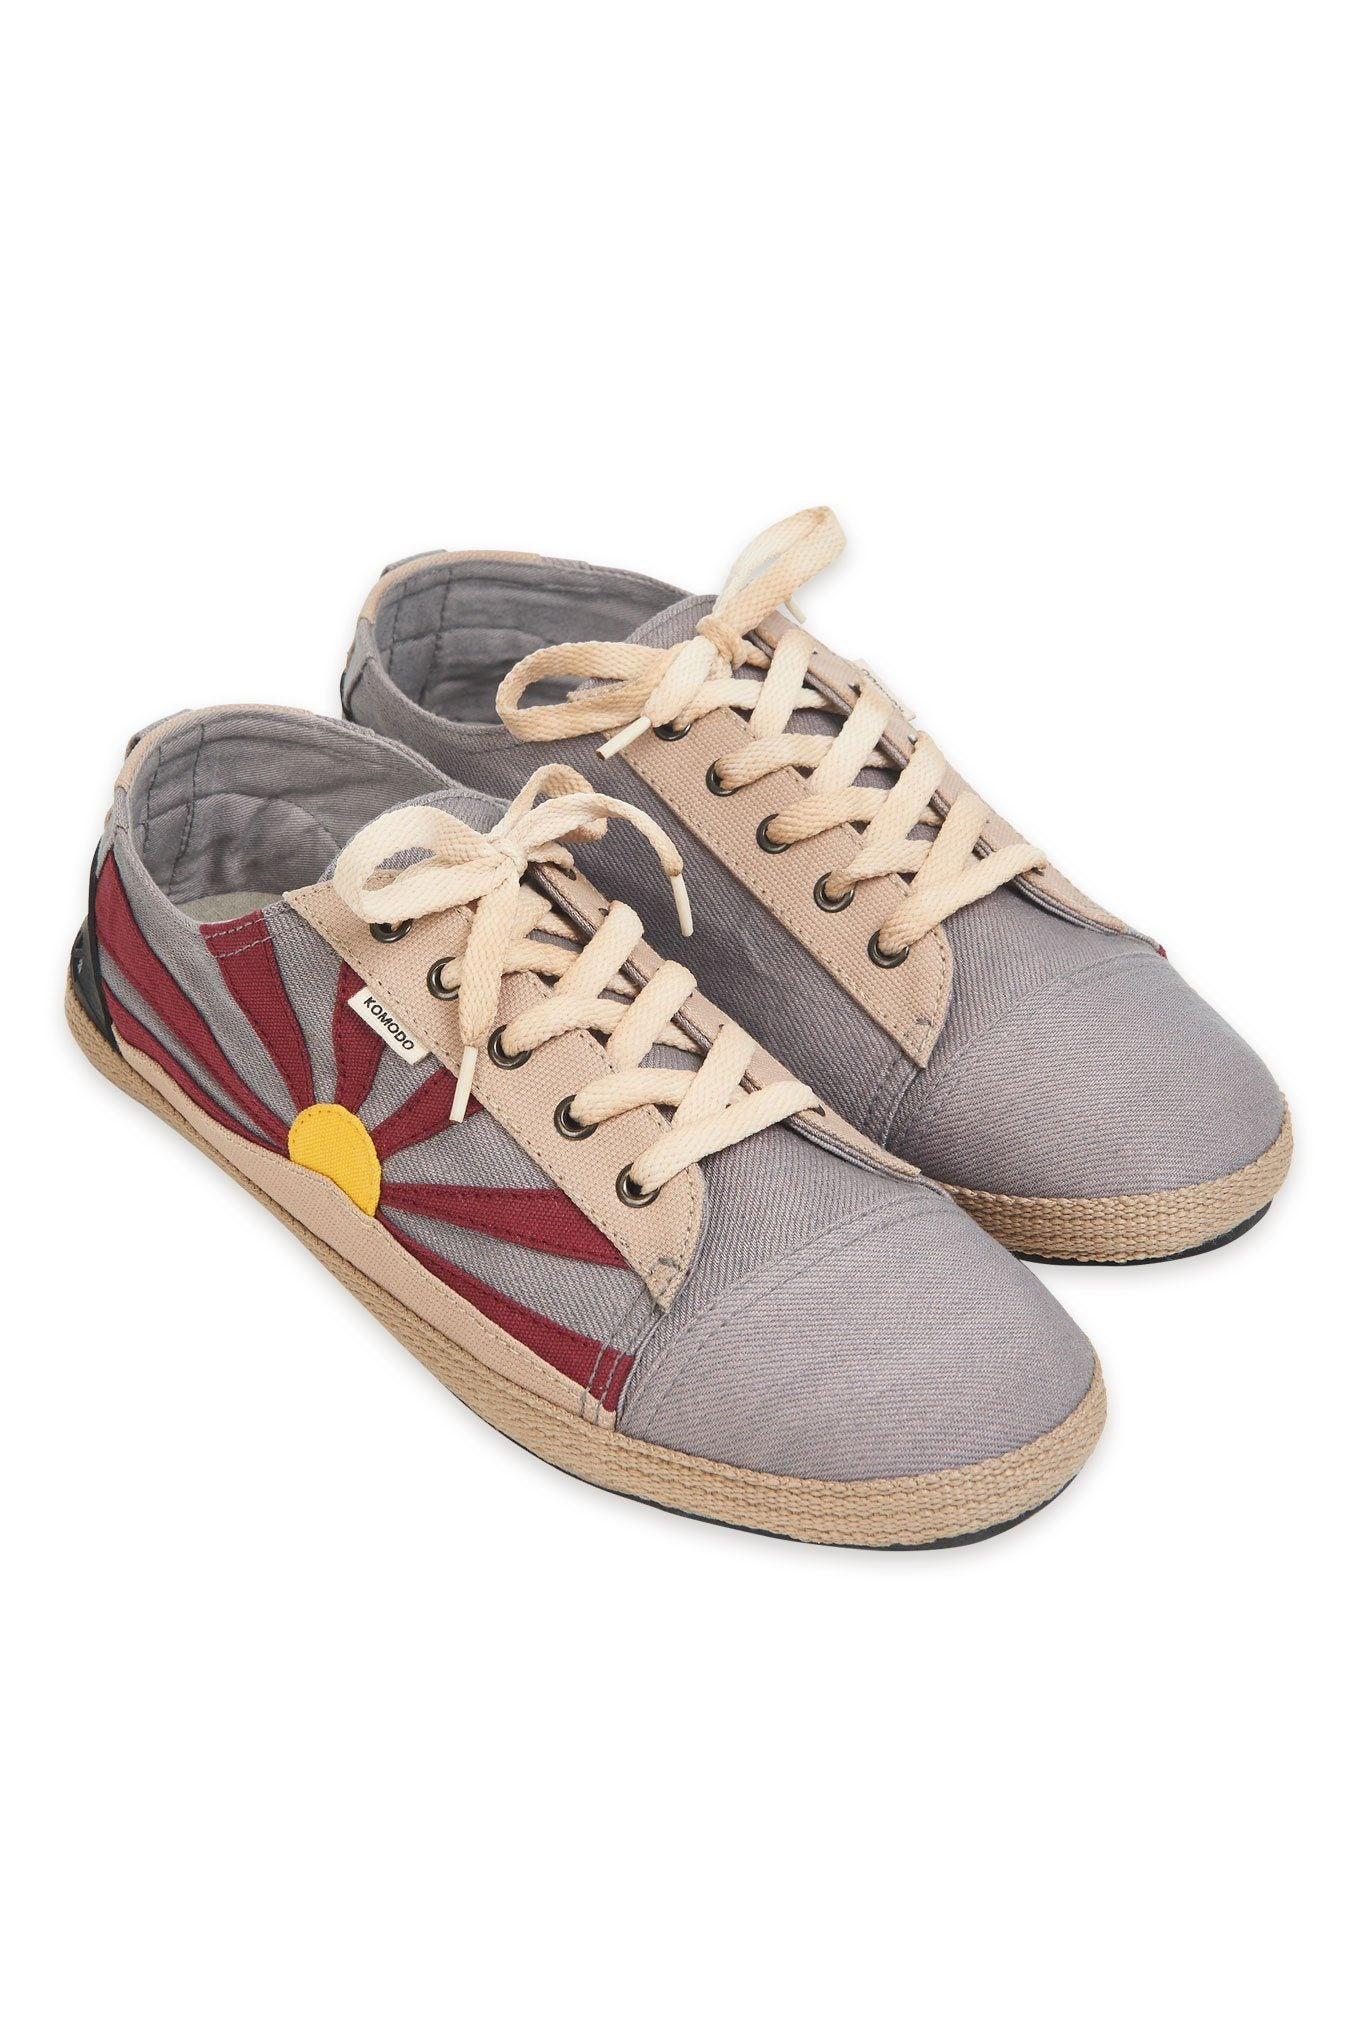 Shoes - FREE TIBET Mens Shoe Grey